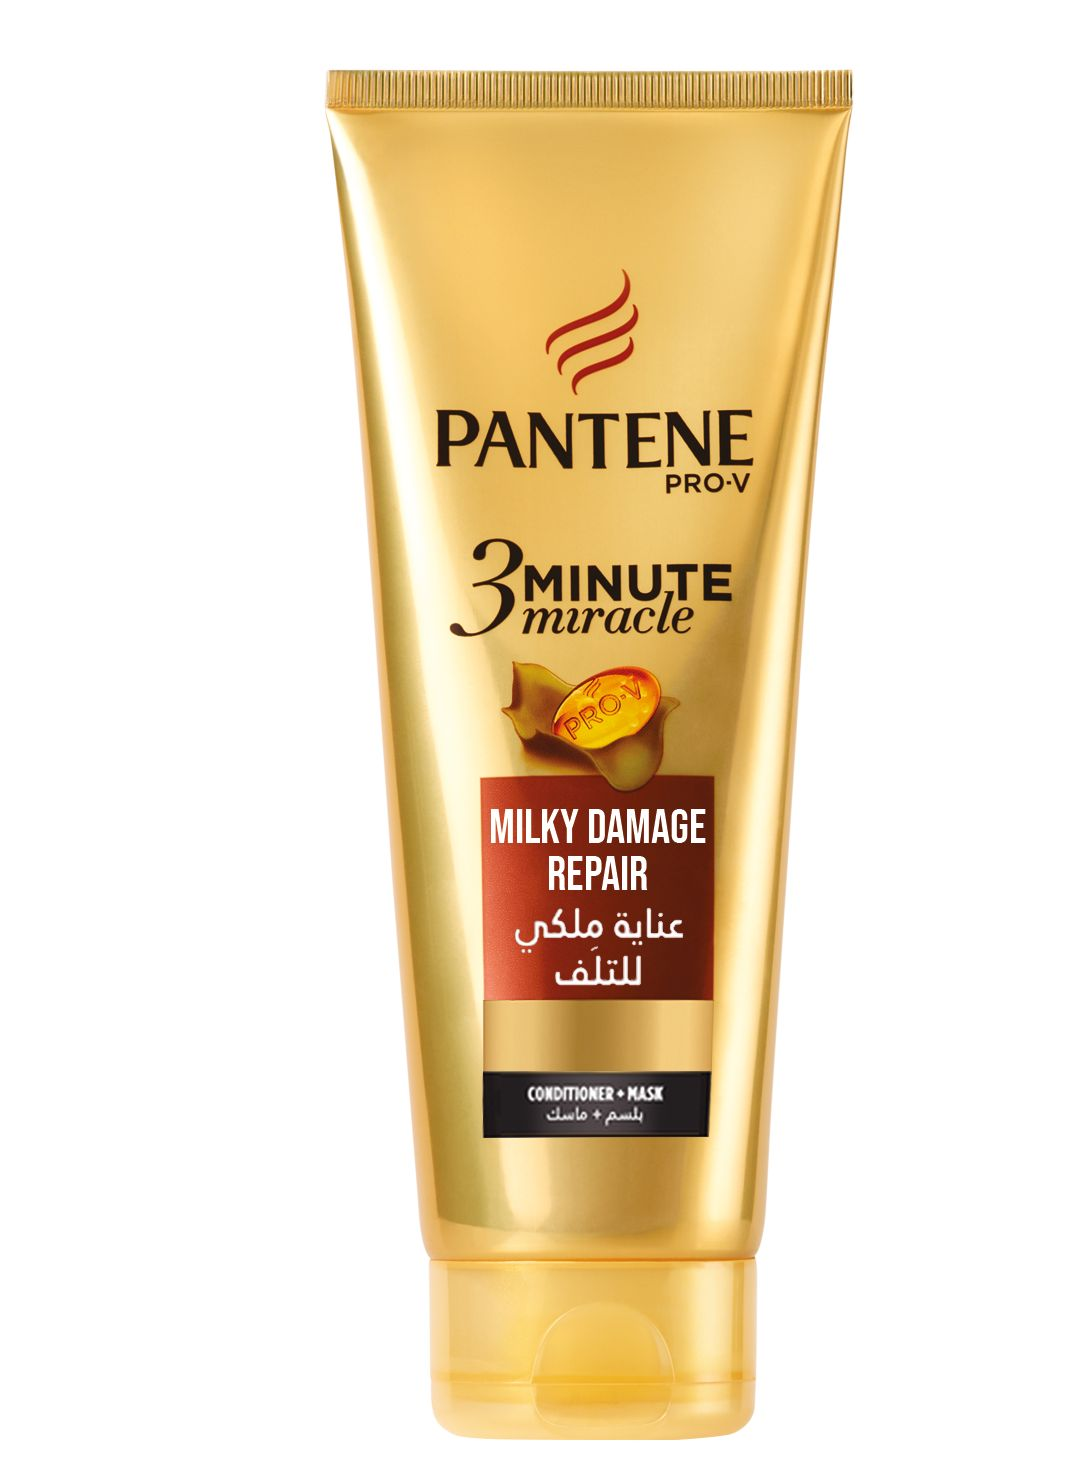 PANTENE COND MASK MILKY DAMAGE 200ML